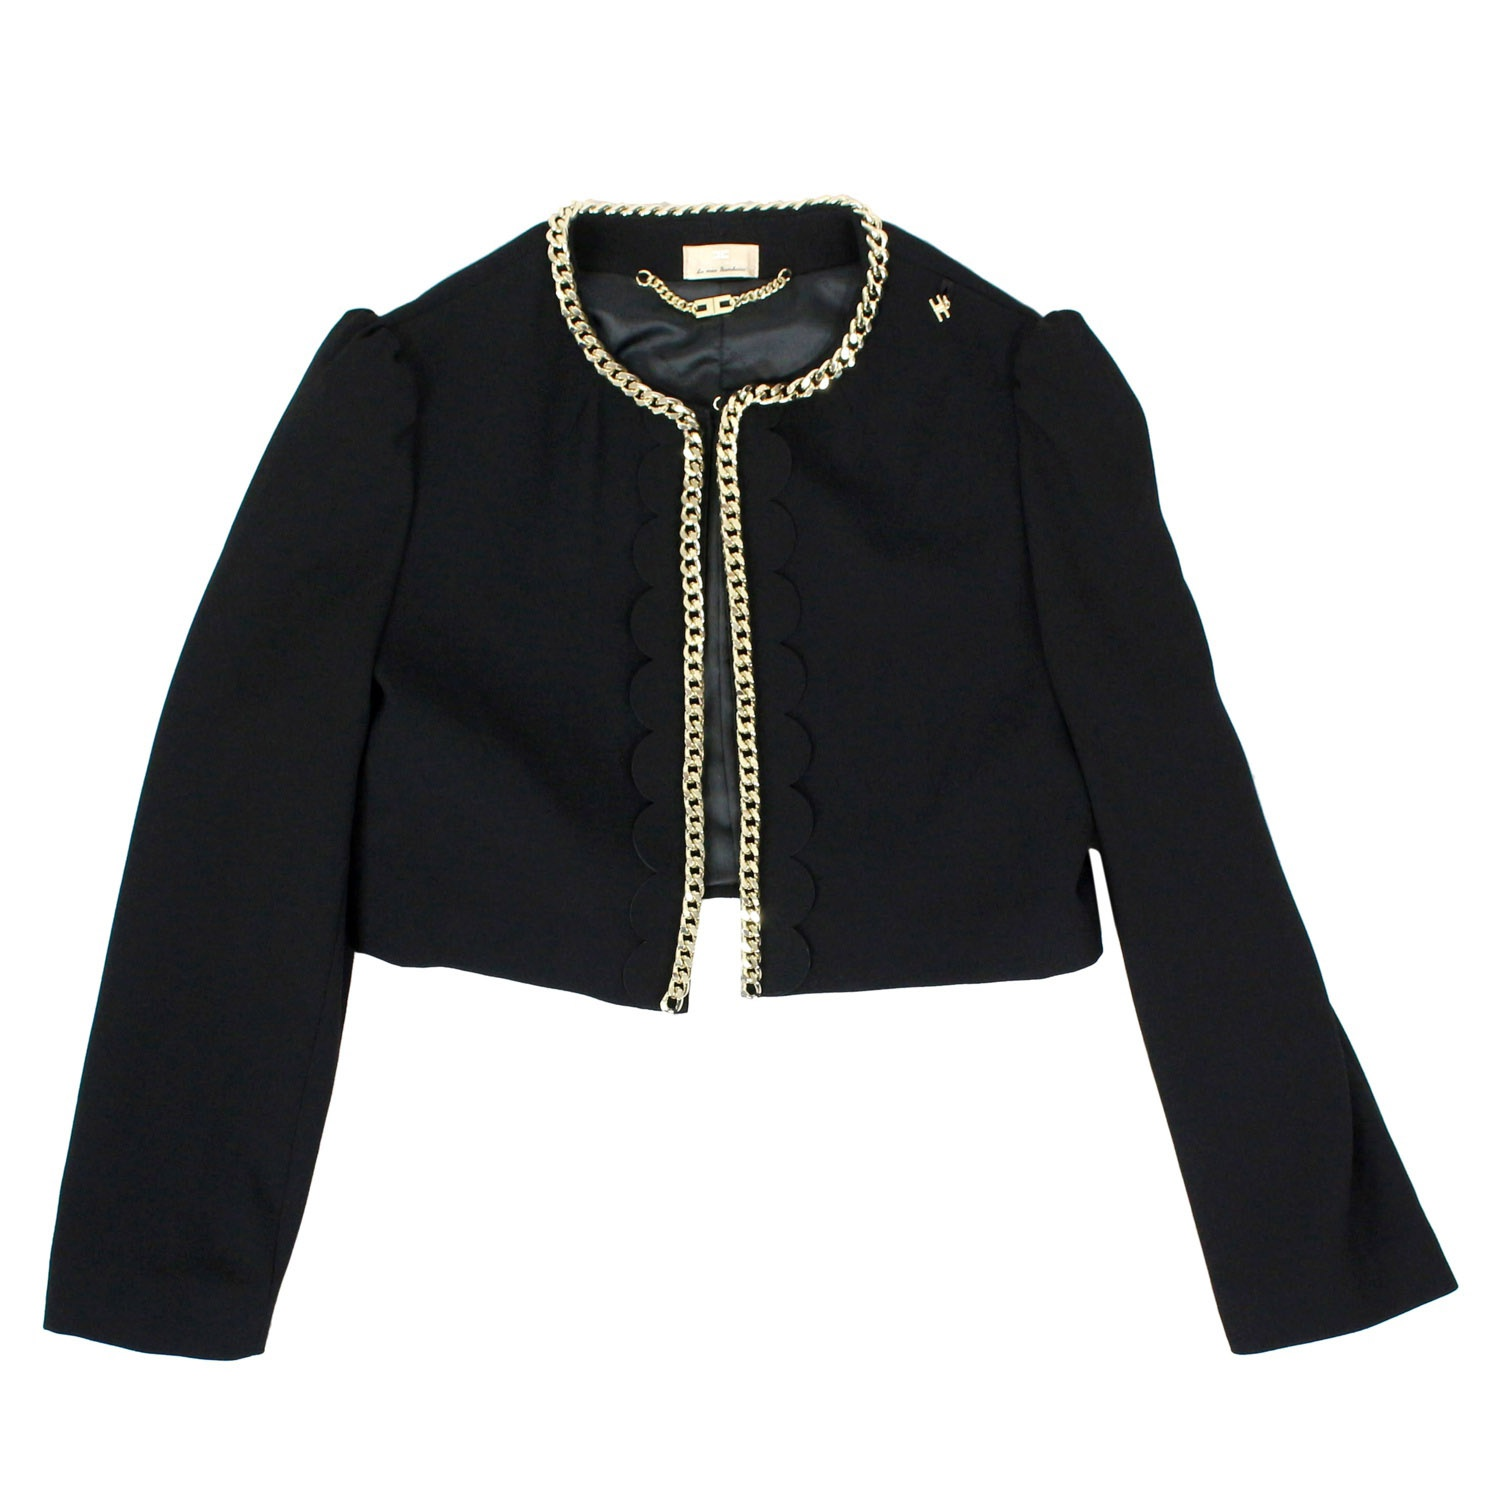 a8eaaabedc Short jacket with chains